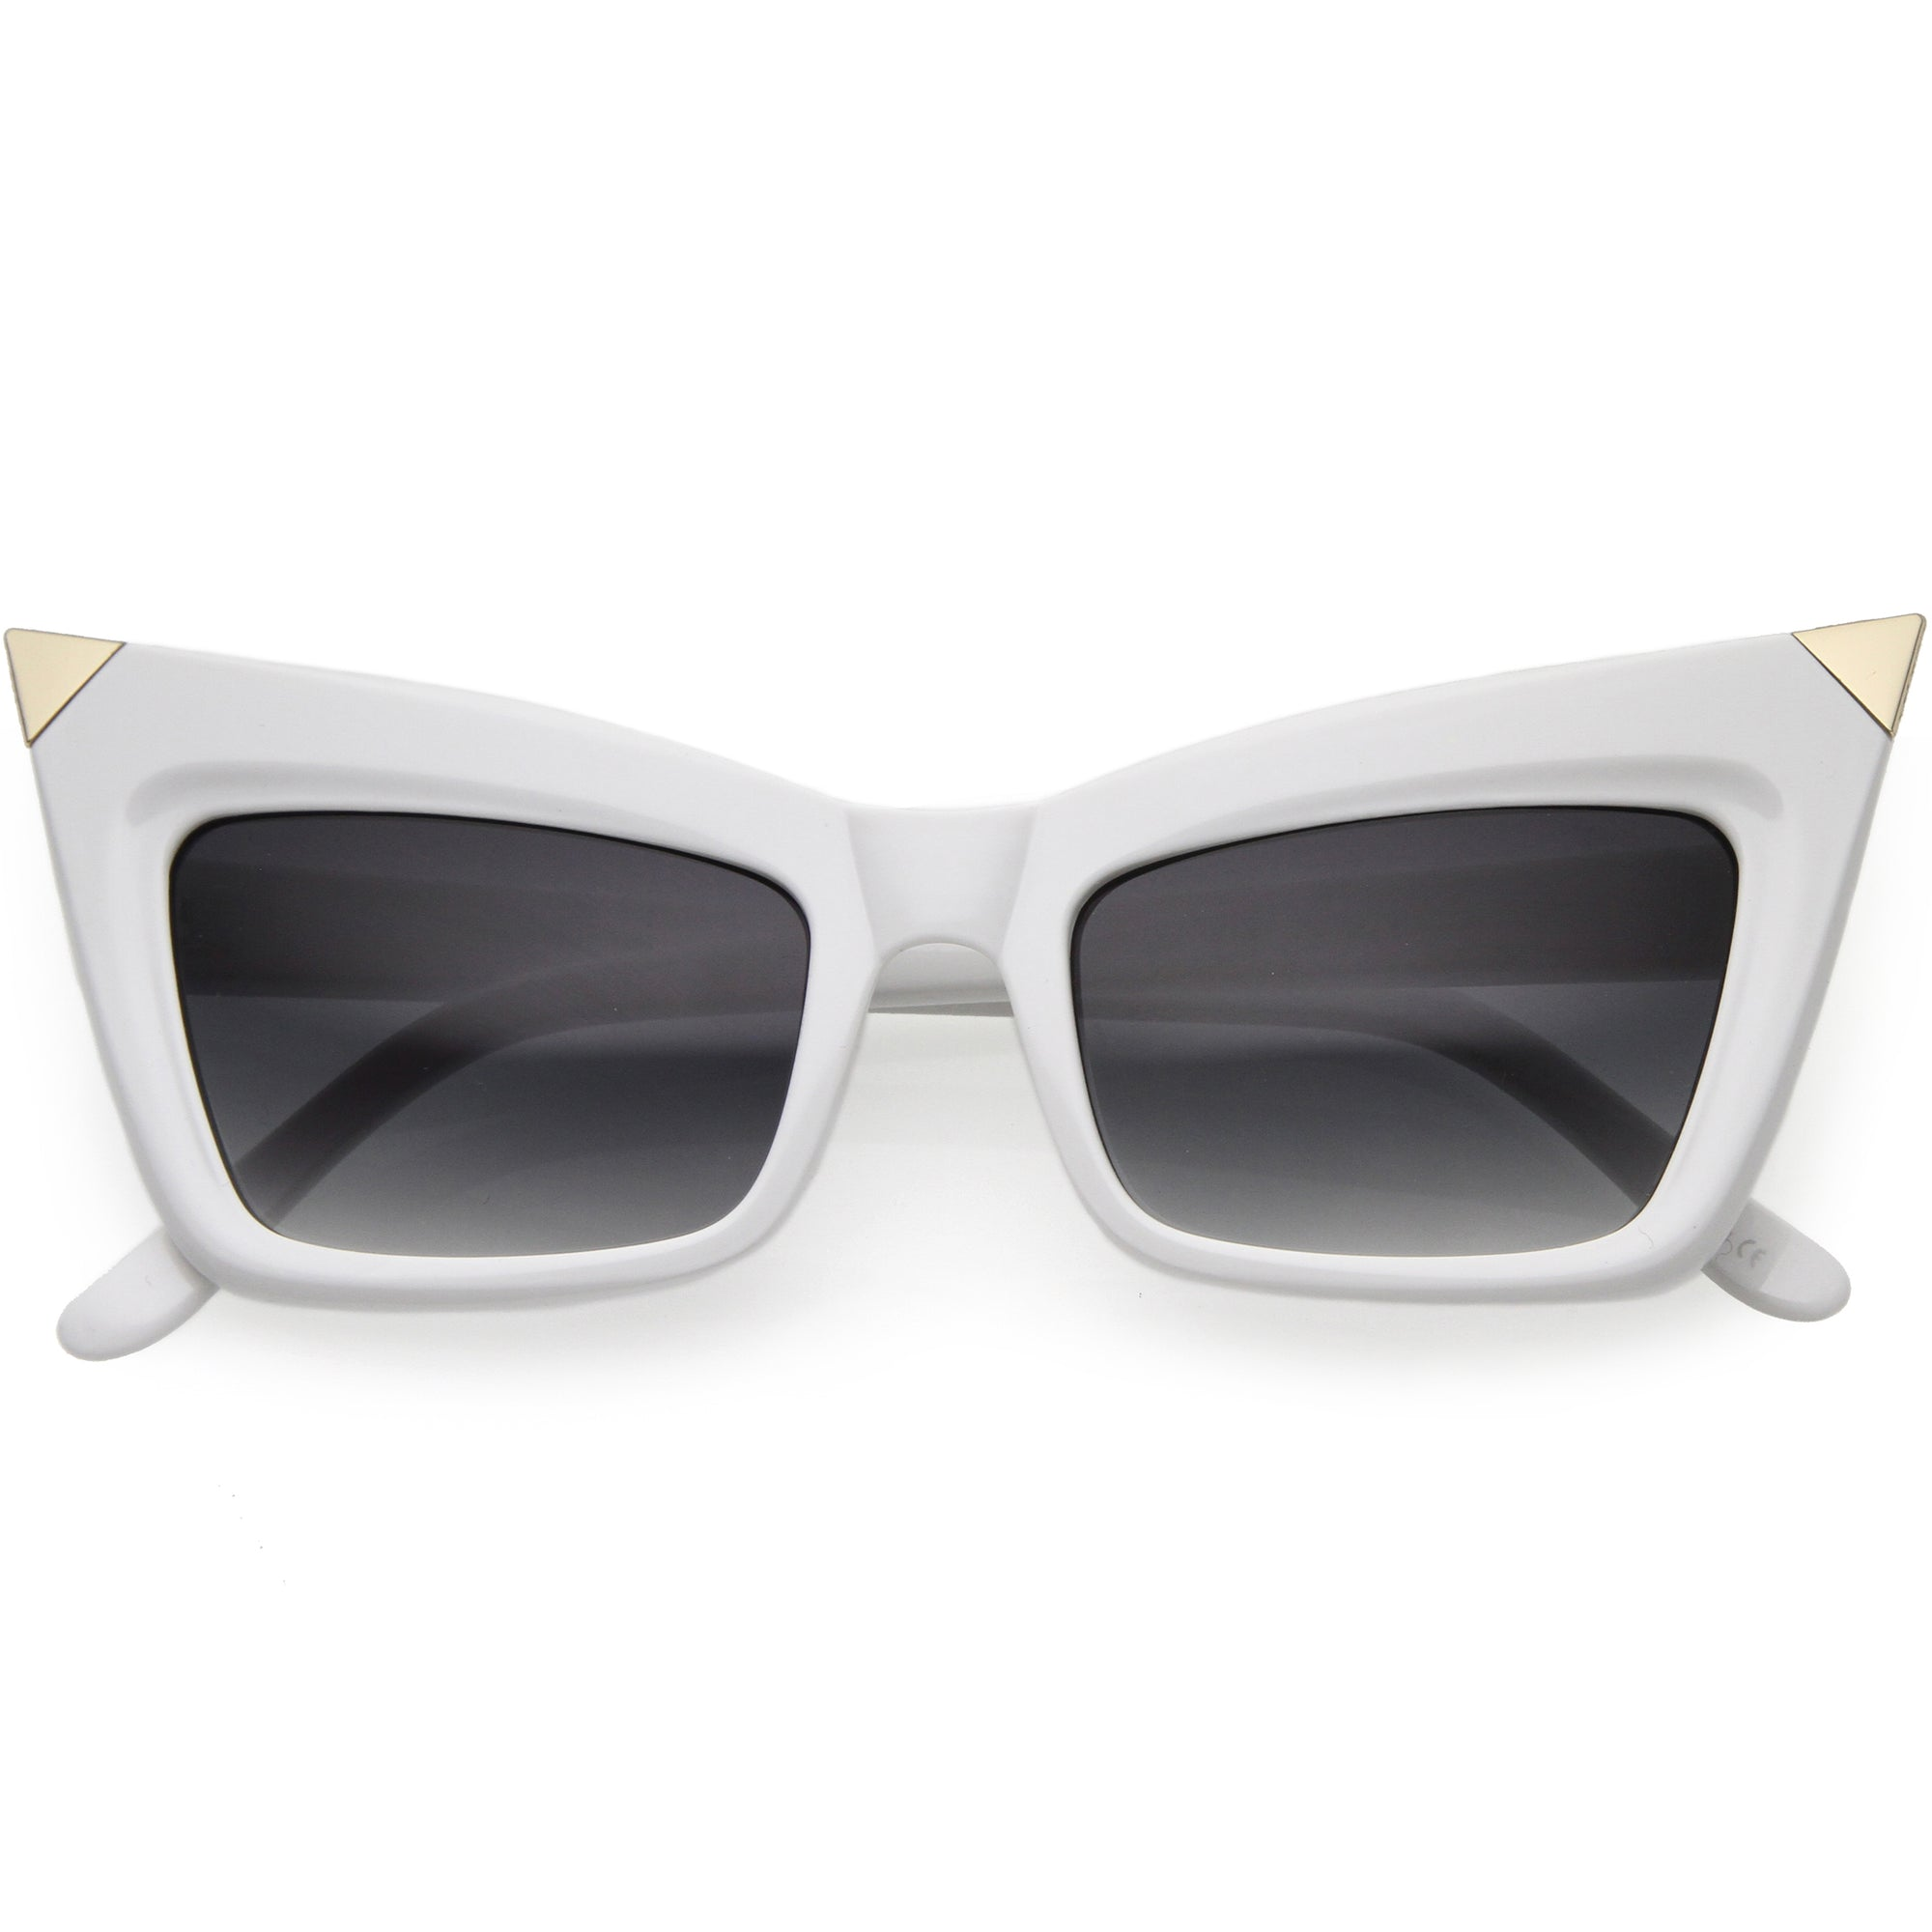 Sharp High-Pointed Metal Tip Designer-Inspired Fashion Cat Eye Sunglasses D004